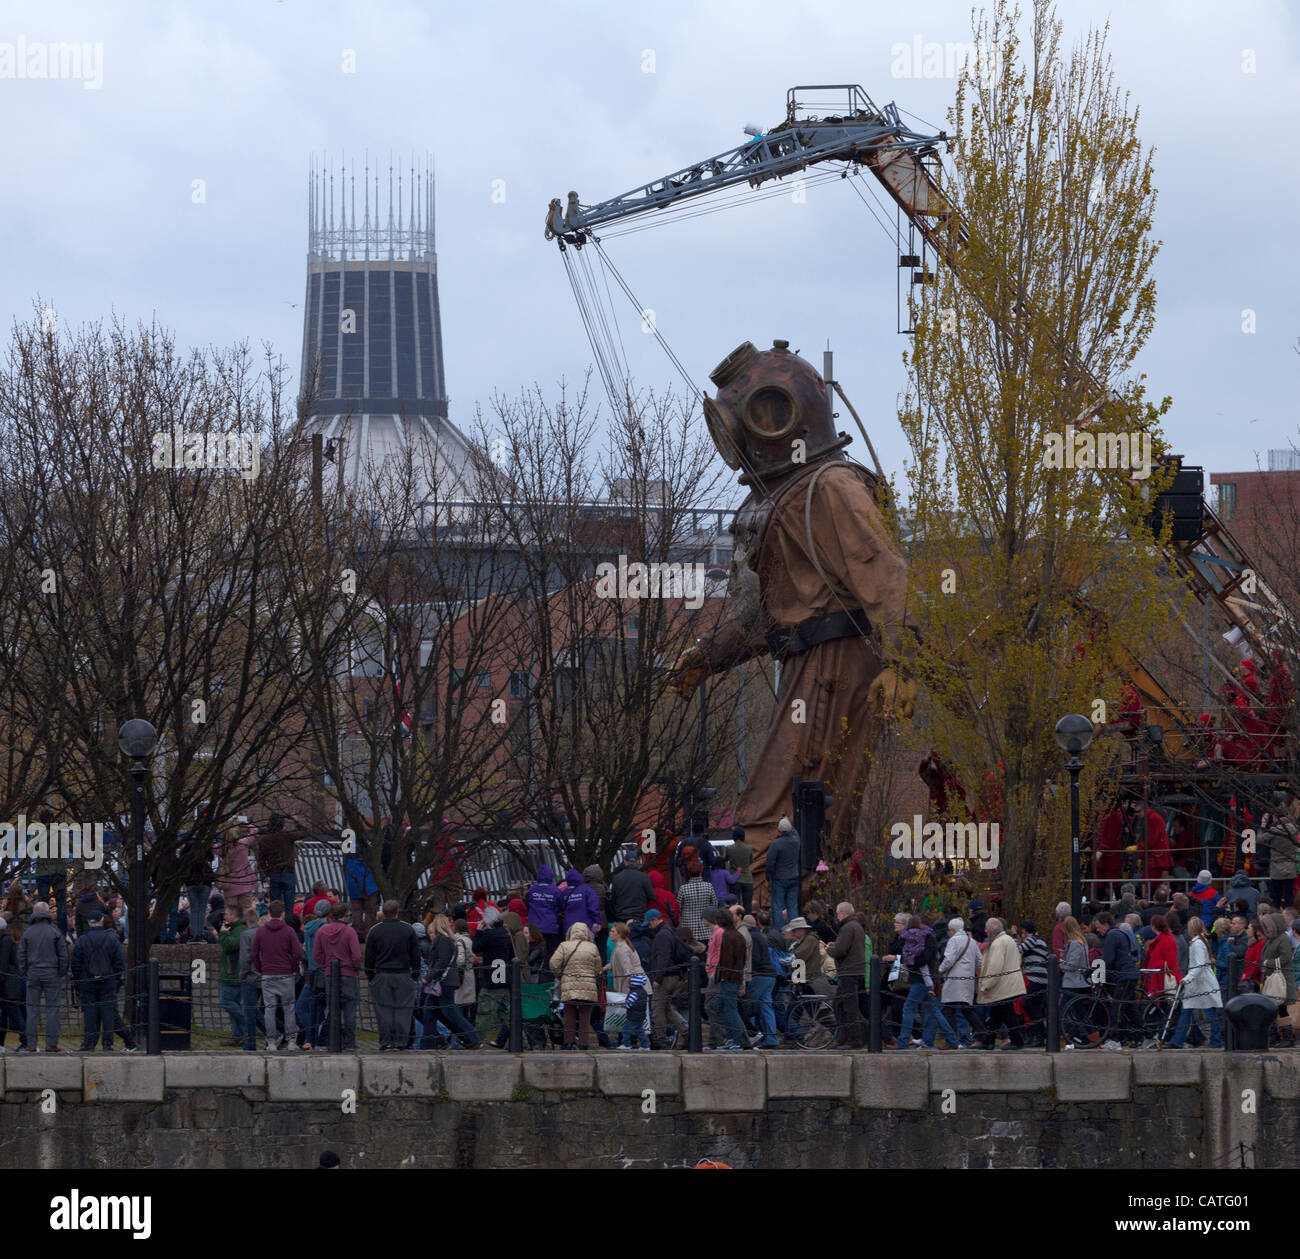 Liverpool, UK, Friday 20th April, 2012. The giant uncle puppet starts his walk around the city on the first of a - Stock Image